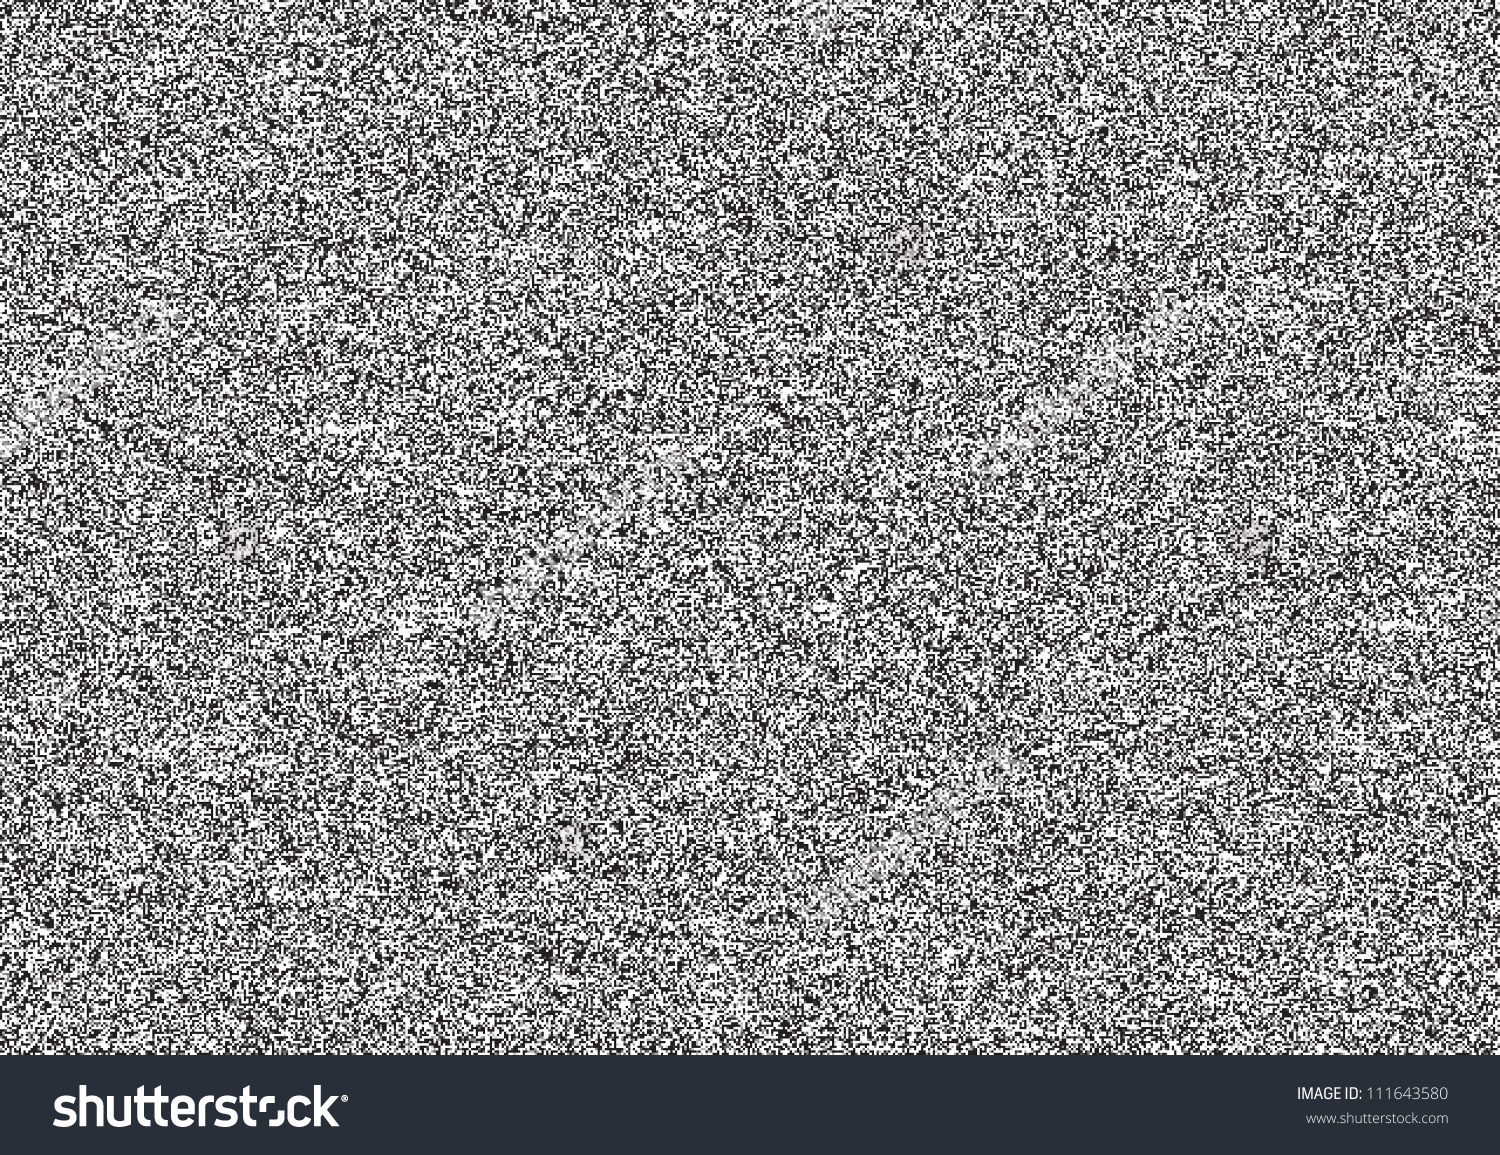 Seamless Texture Television Grainy Noise Effect Stock Vector.